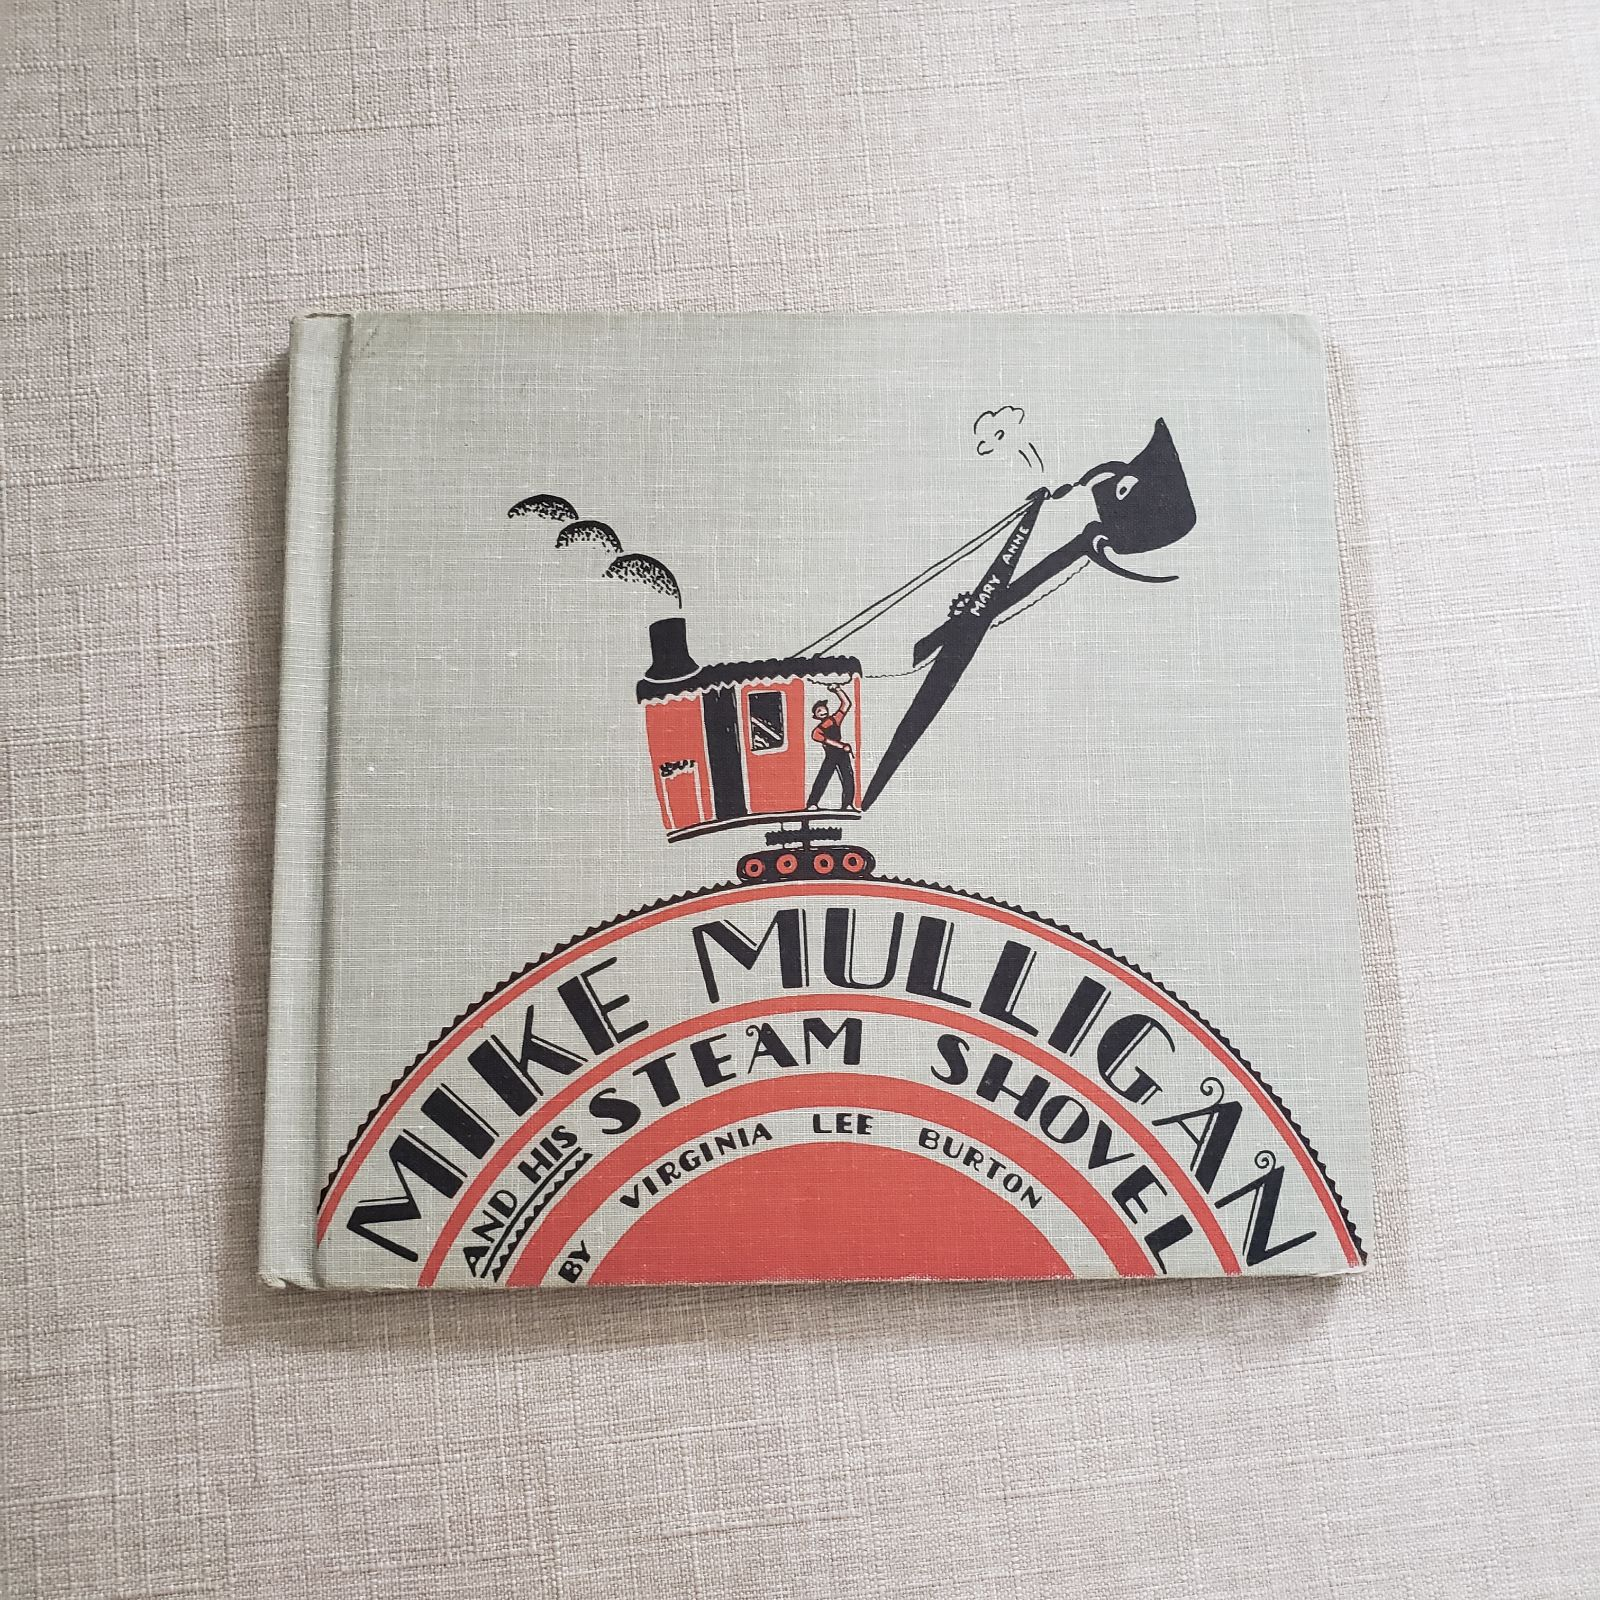 Vintage Mike Mulligan Book